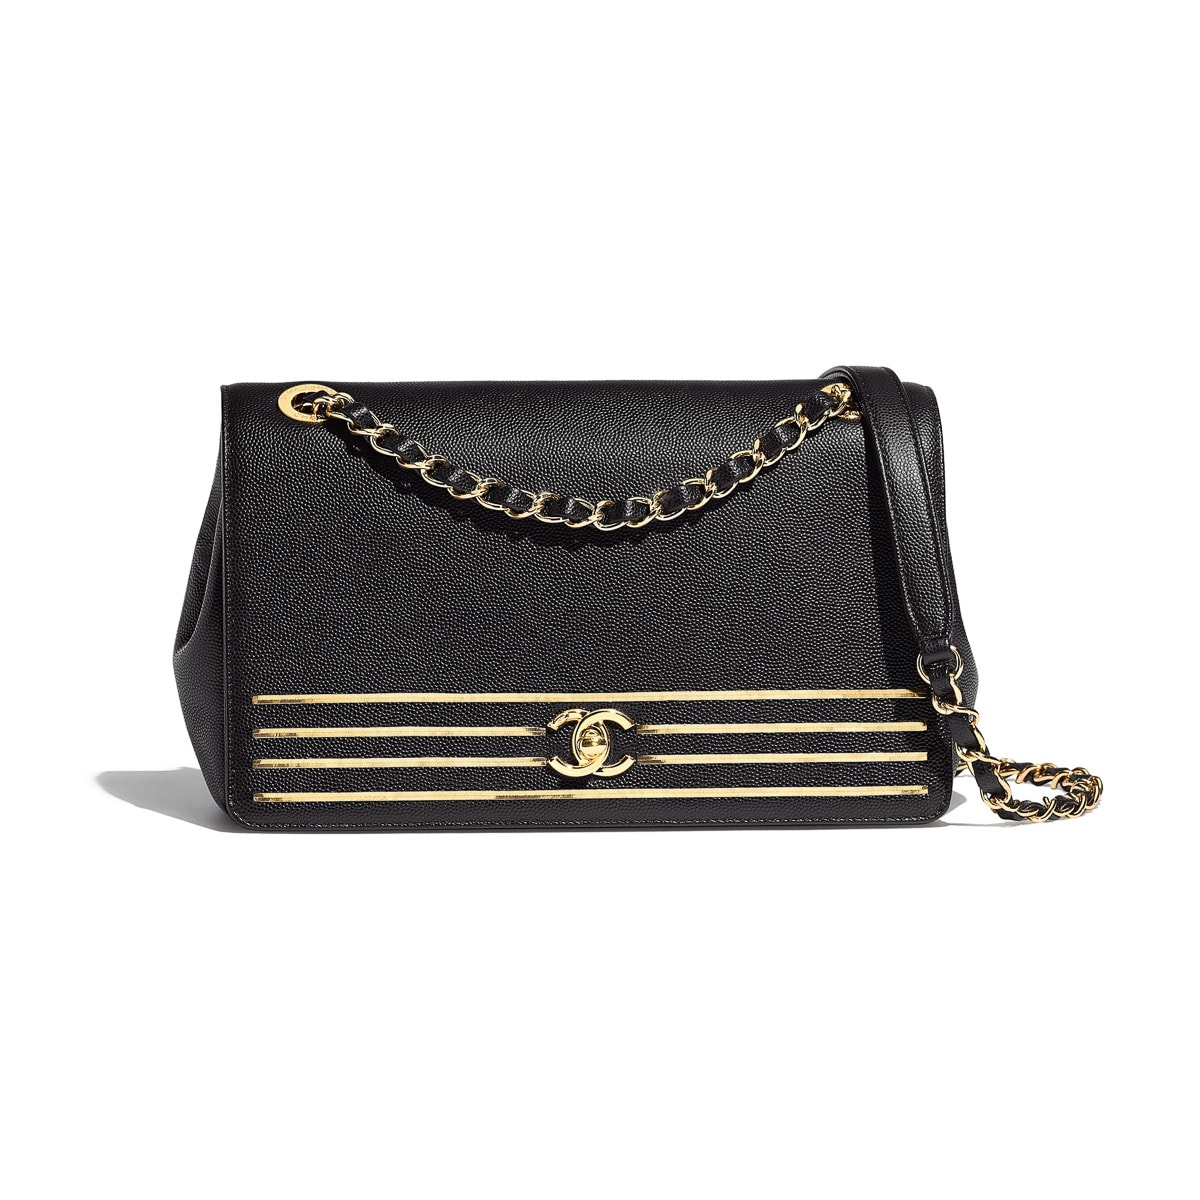 20a6ad83c5fa Chanel Bag Price Canada 2019. We've Got Over 100 Pics + Prices of Chanel's  Nautical-Inspired Cruise 2019